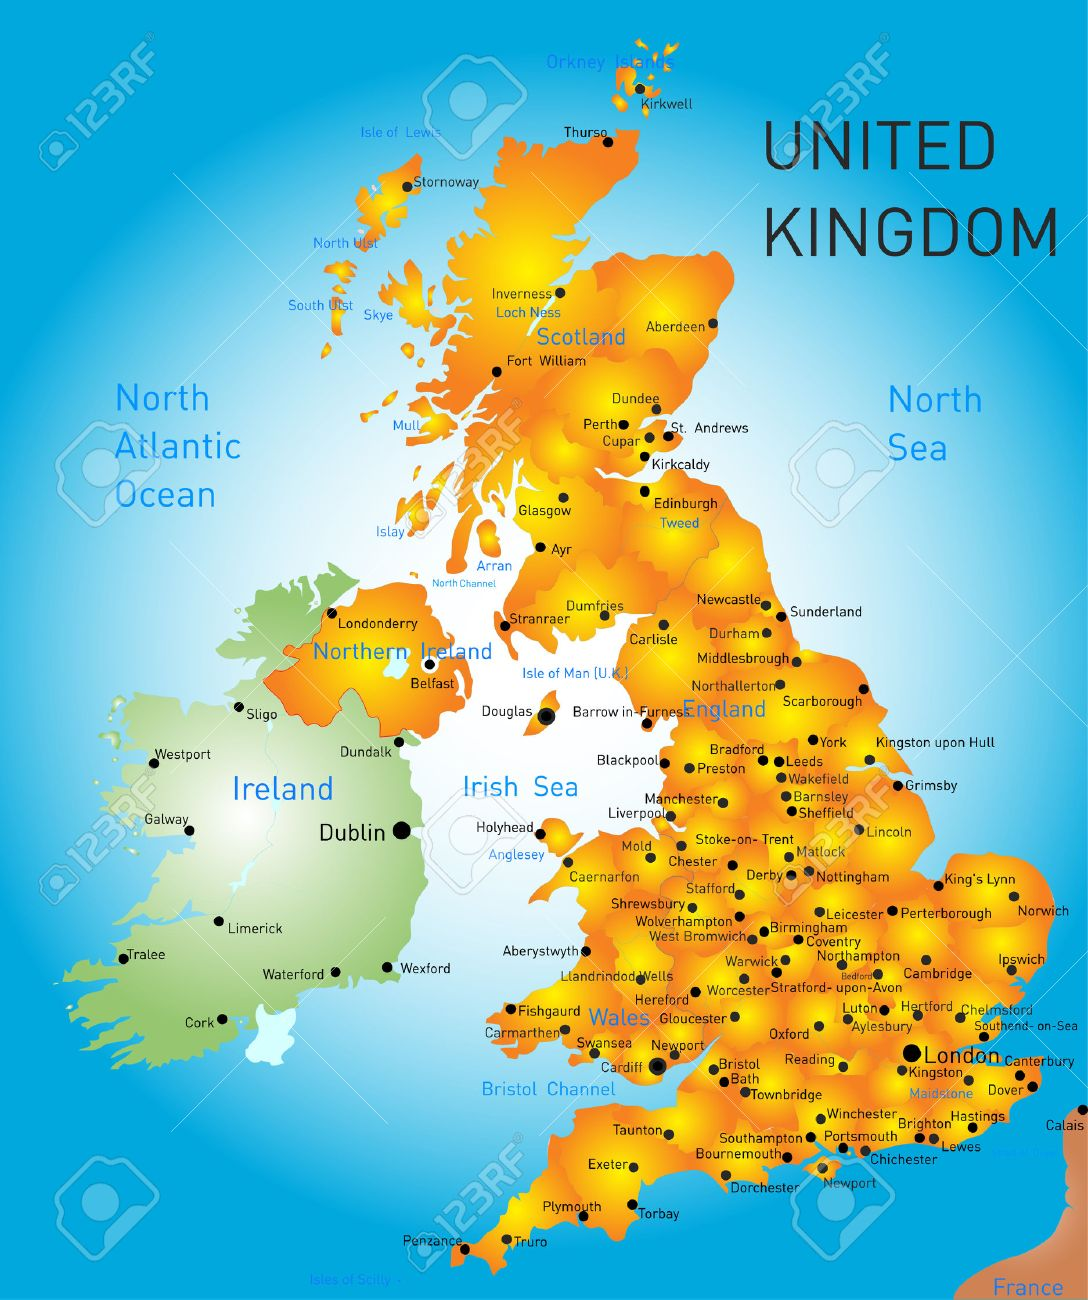 Vector Color Map Of United Kingdom Royalty Free Cliparts Vectors - United kingdom map